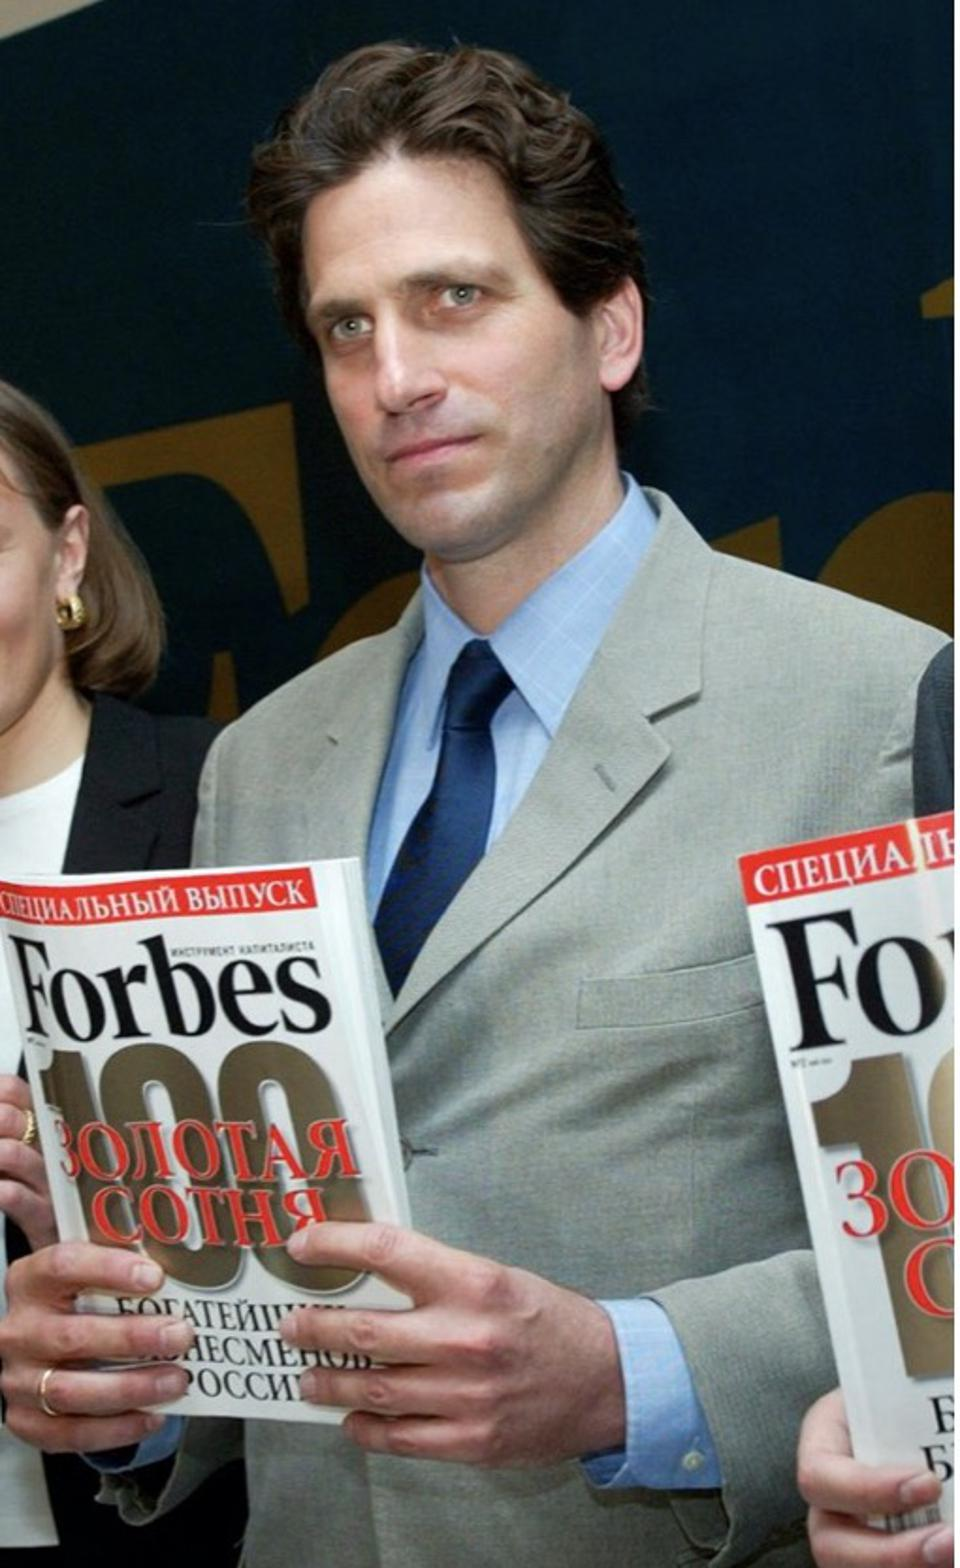 Paul Klebnikov, the editor of Forbes Magazine's Russian edition, at a Moscow news conference in May 2004